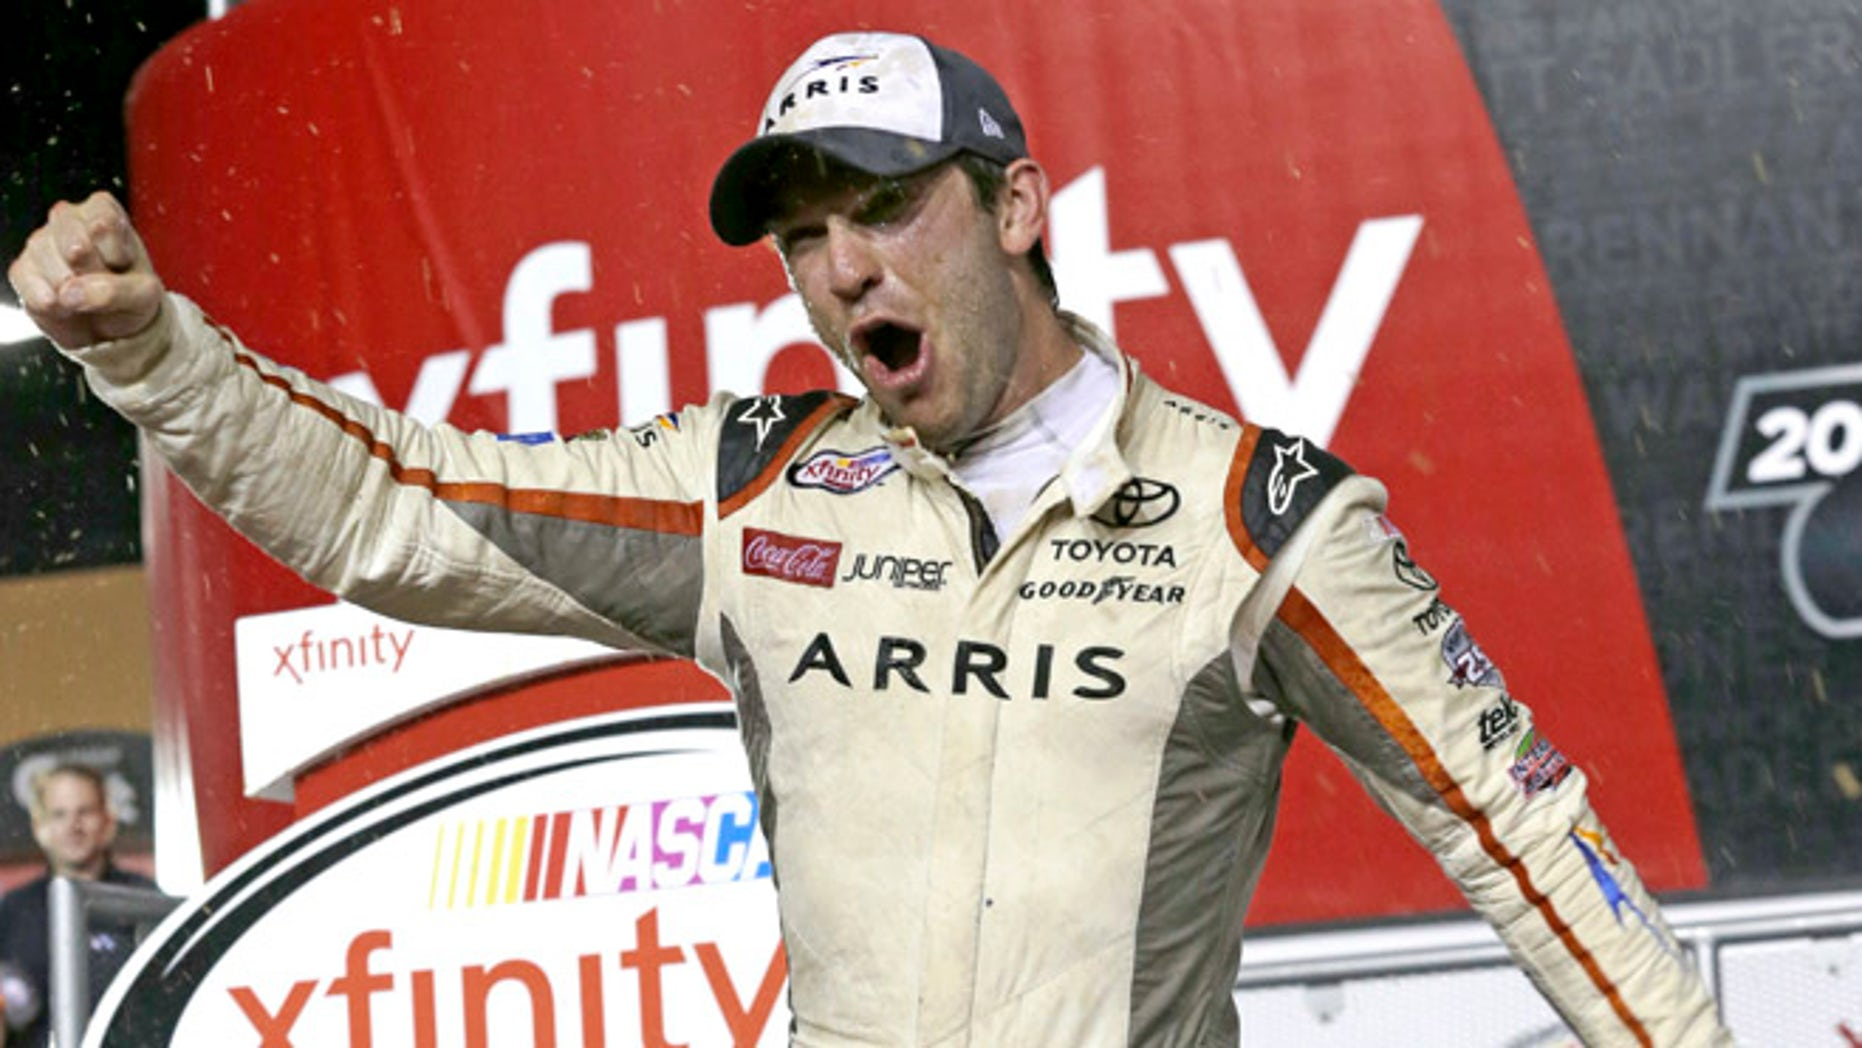 Daniel Suarez celebrates after wining the NASCAR Xfinity auto race and season title, Saturday, Nov. 19, 2016, in Homestead, Fla. (AP Photo/Terry Renna)